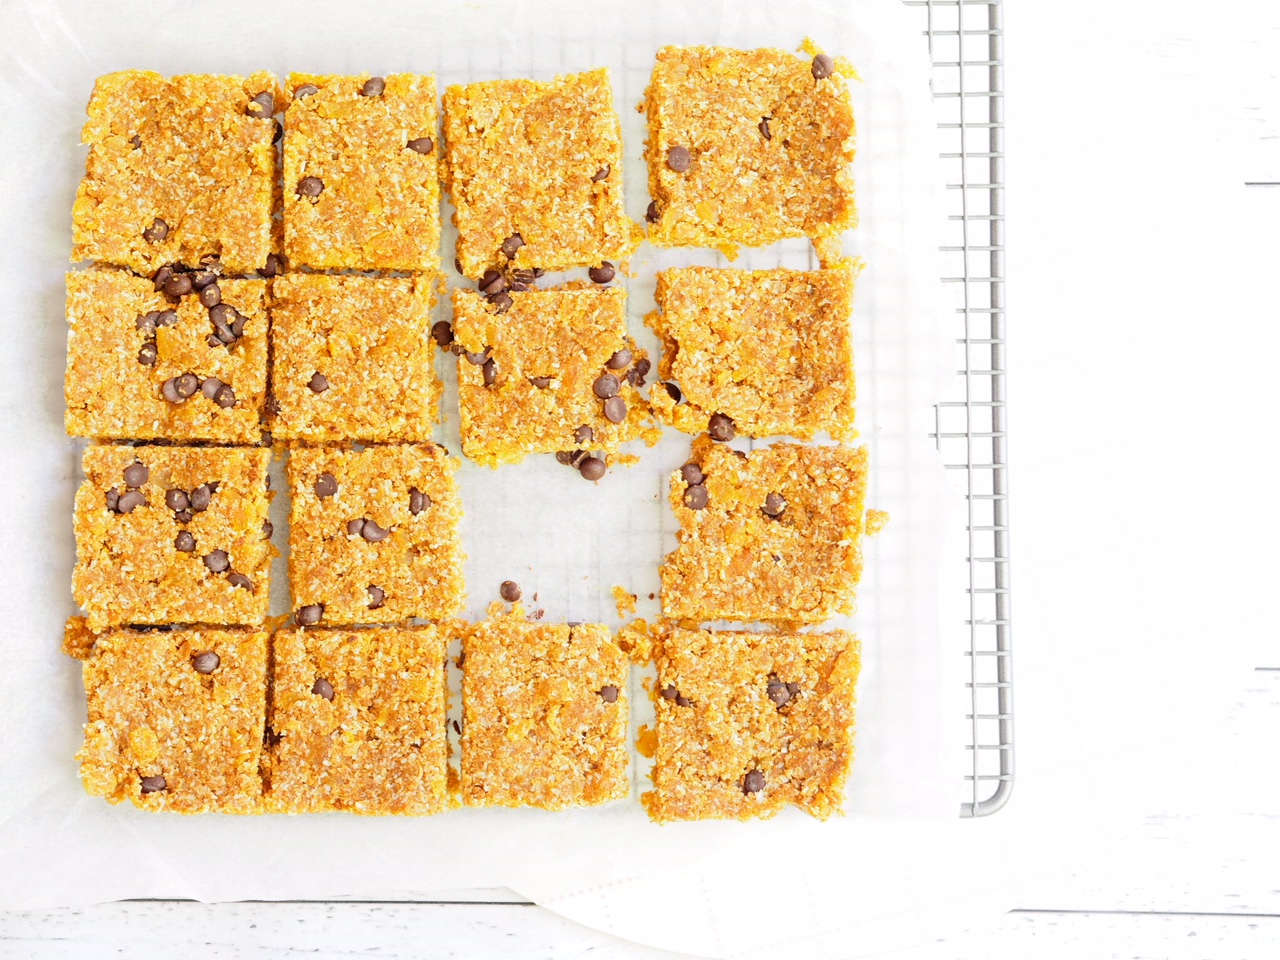 No Bake Apricot Slice with Choc Chips